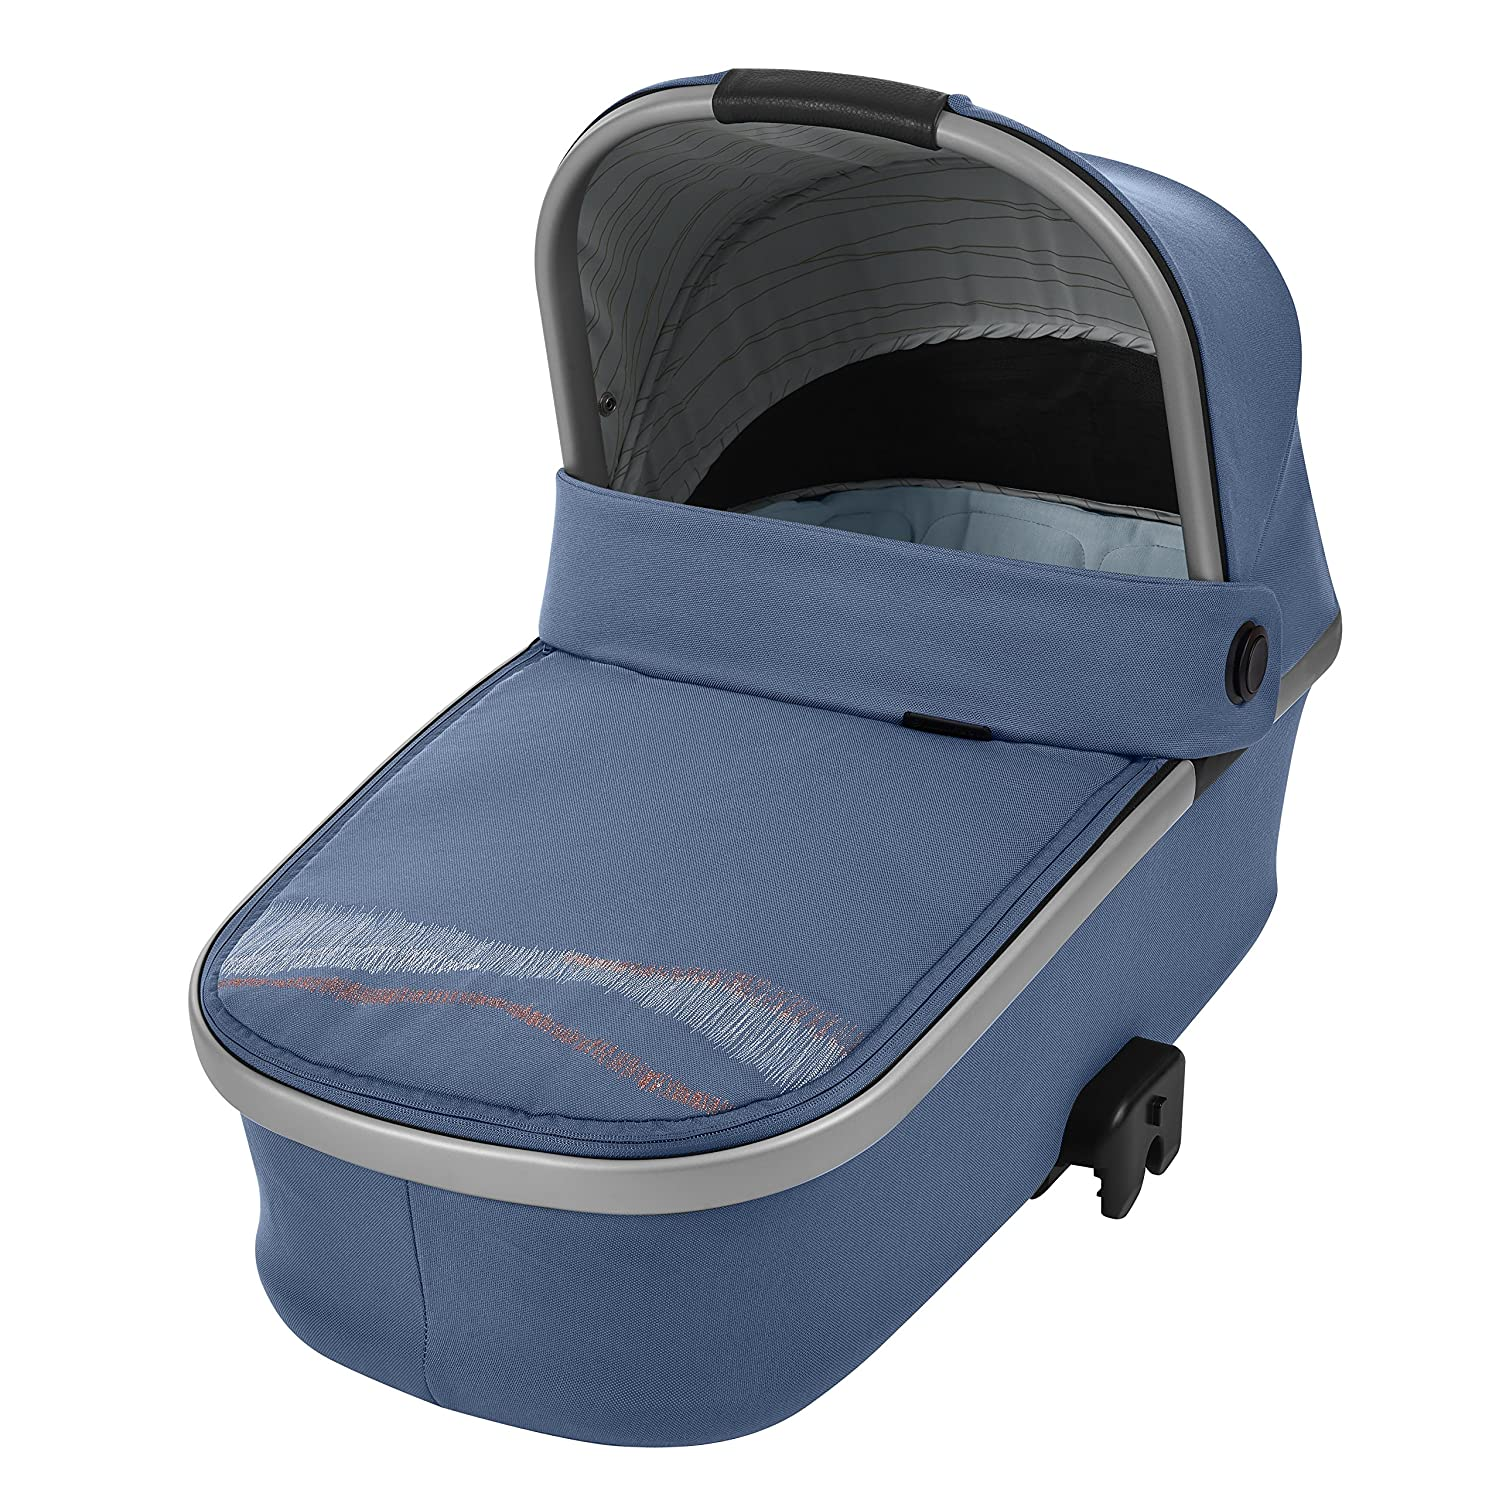 Maxi-Cosi Oria Carrycot, Frequency Blue Dorel UK Limited 1507412300